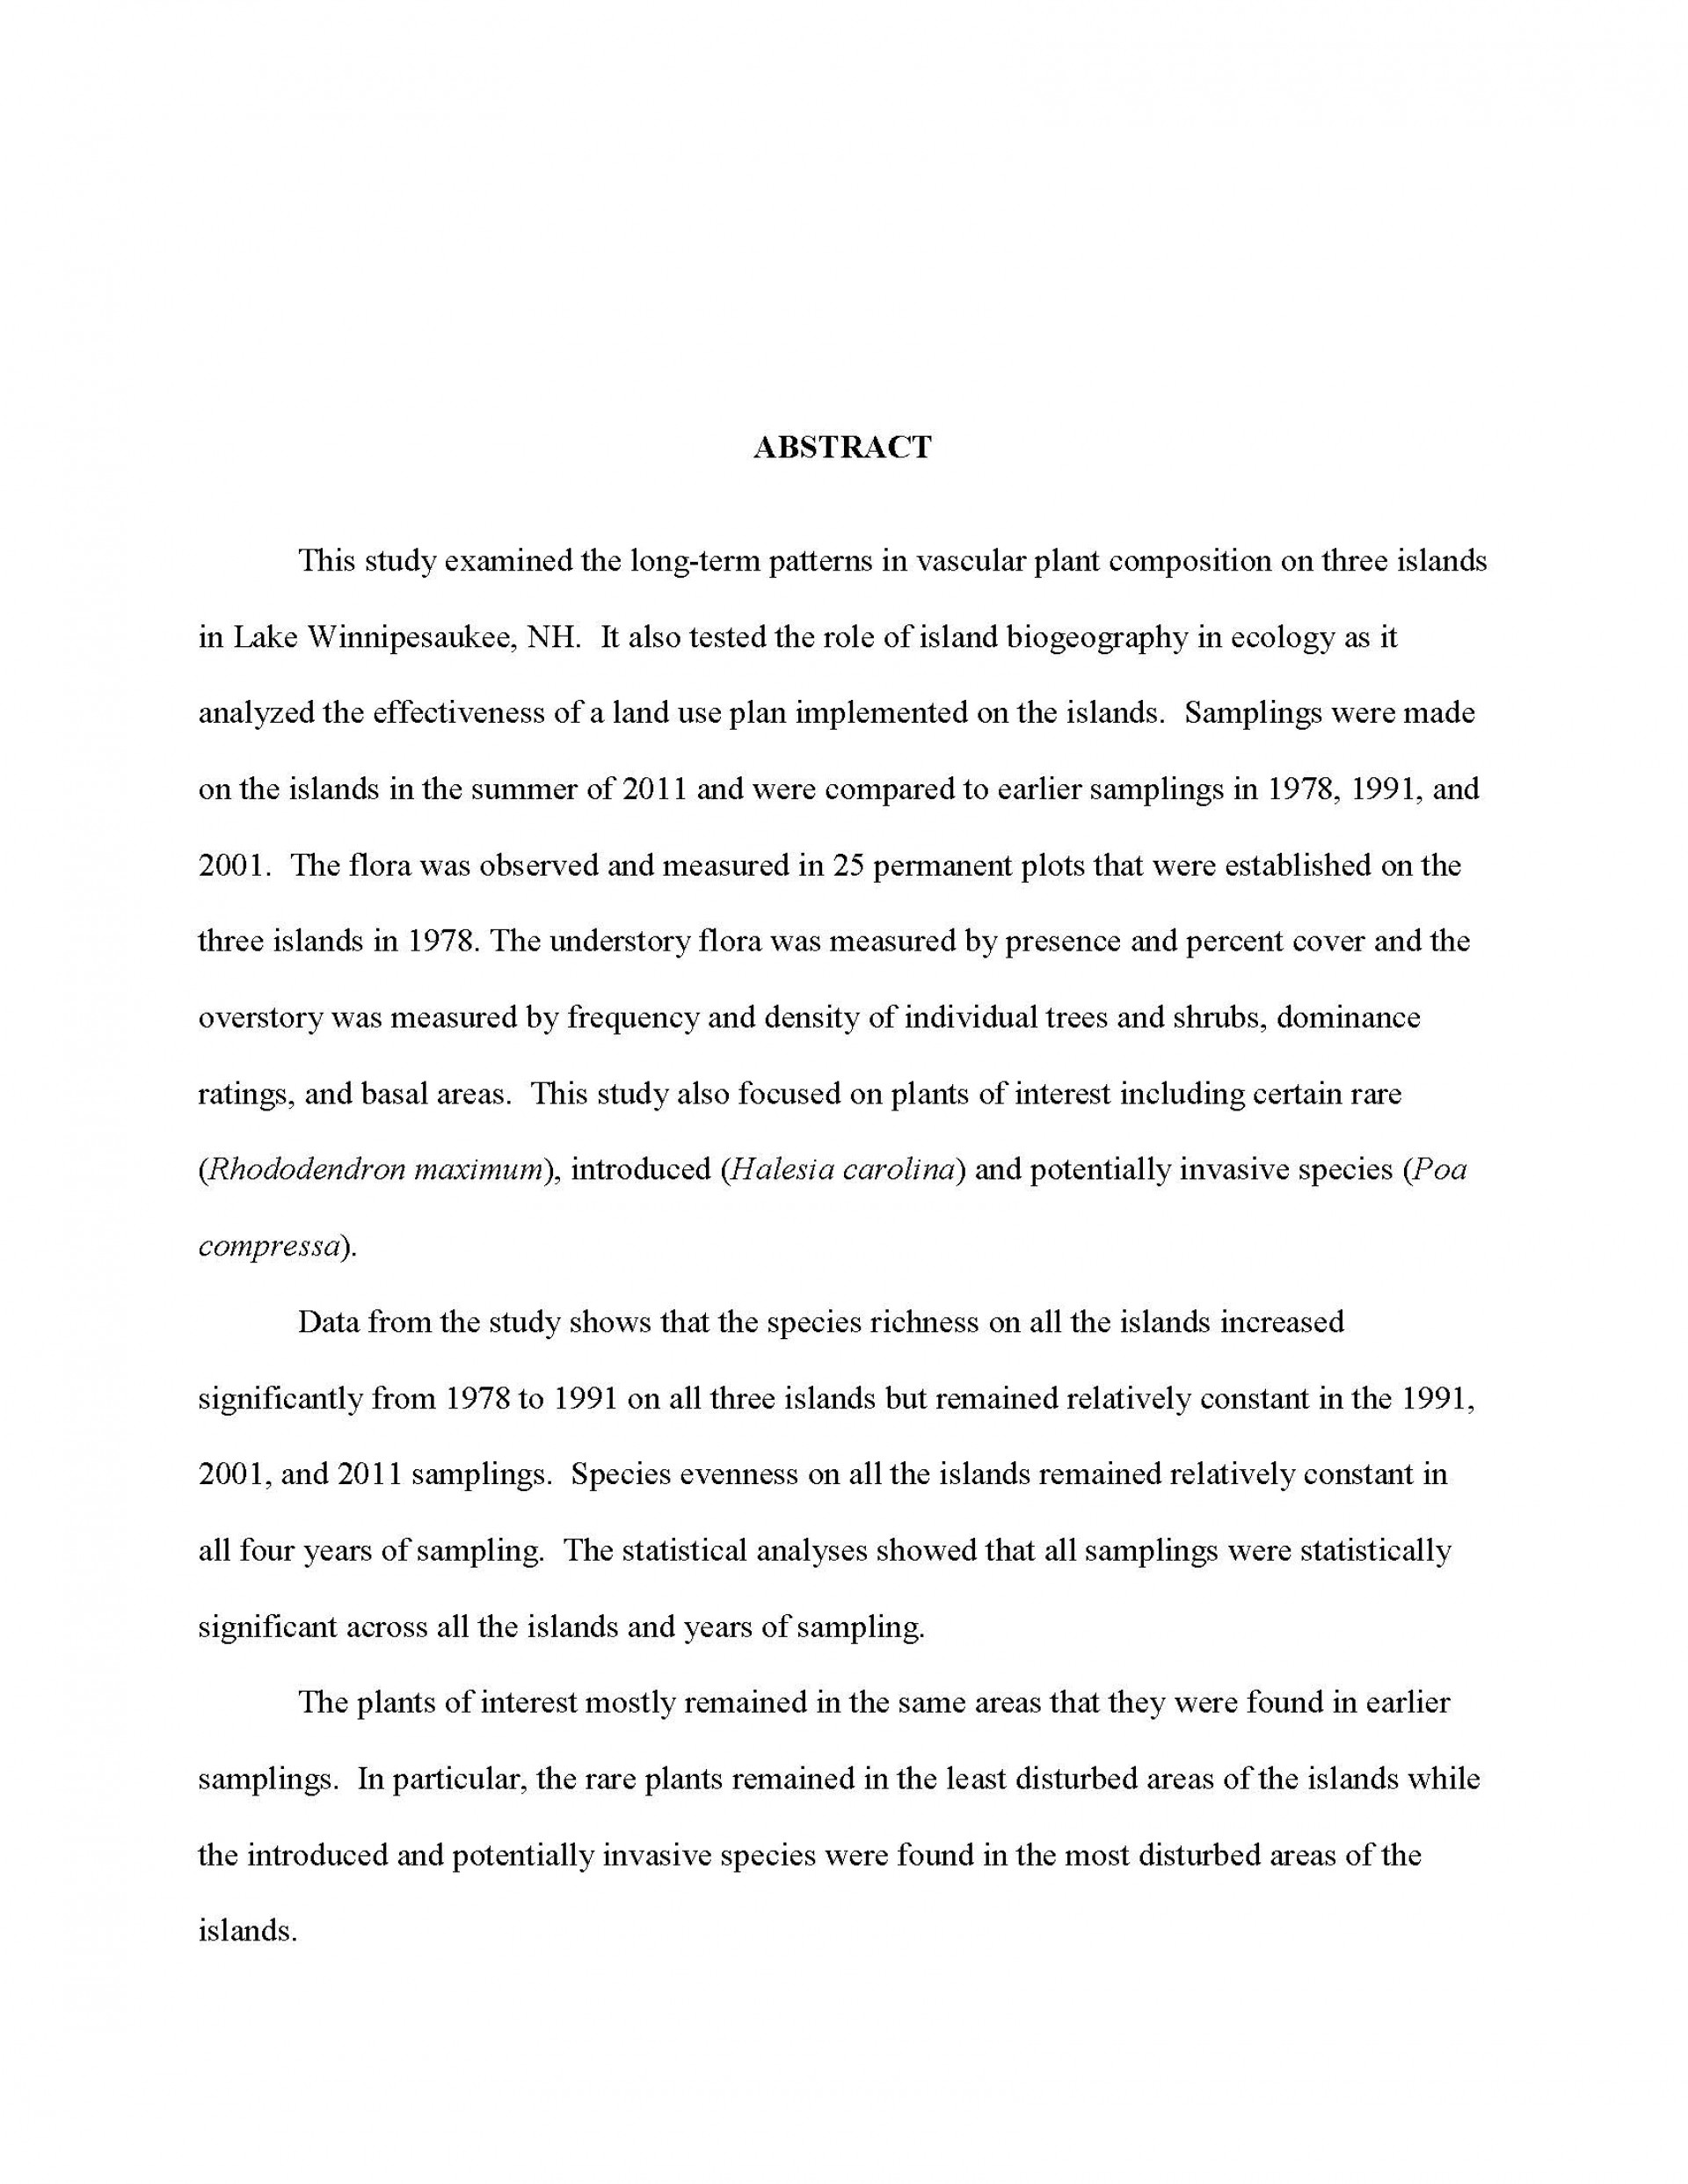 007 Mark S20cover20page20and20abstract20for20tmi20site Page 2 0 What Is An Abstract In Essay Stunning 1920